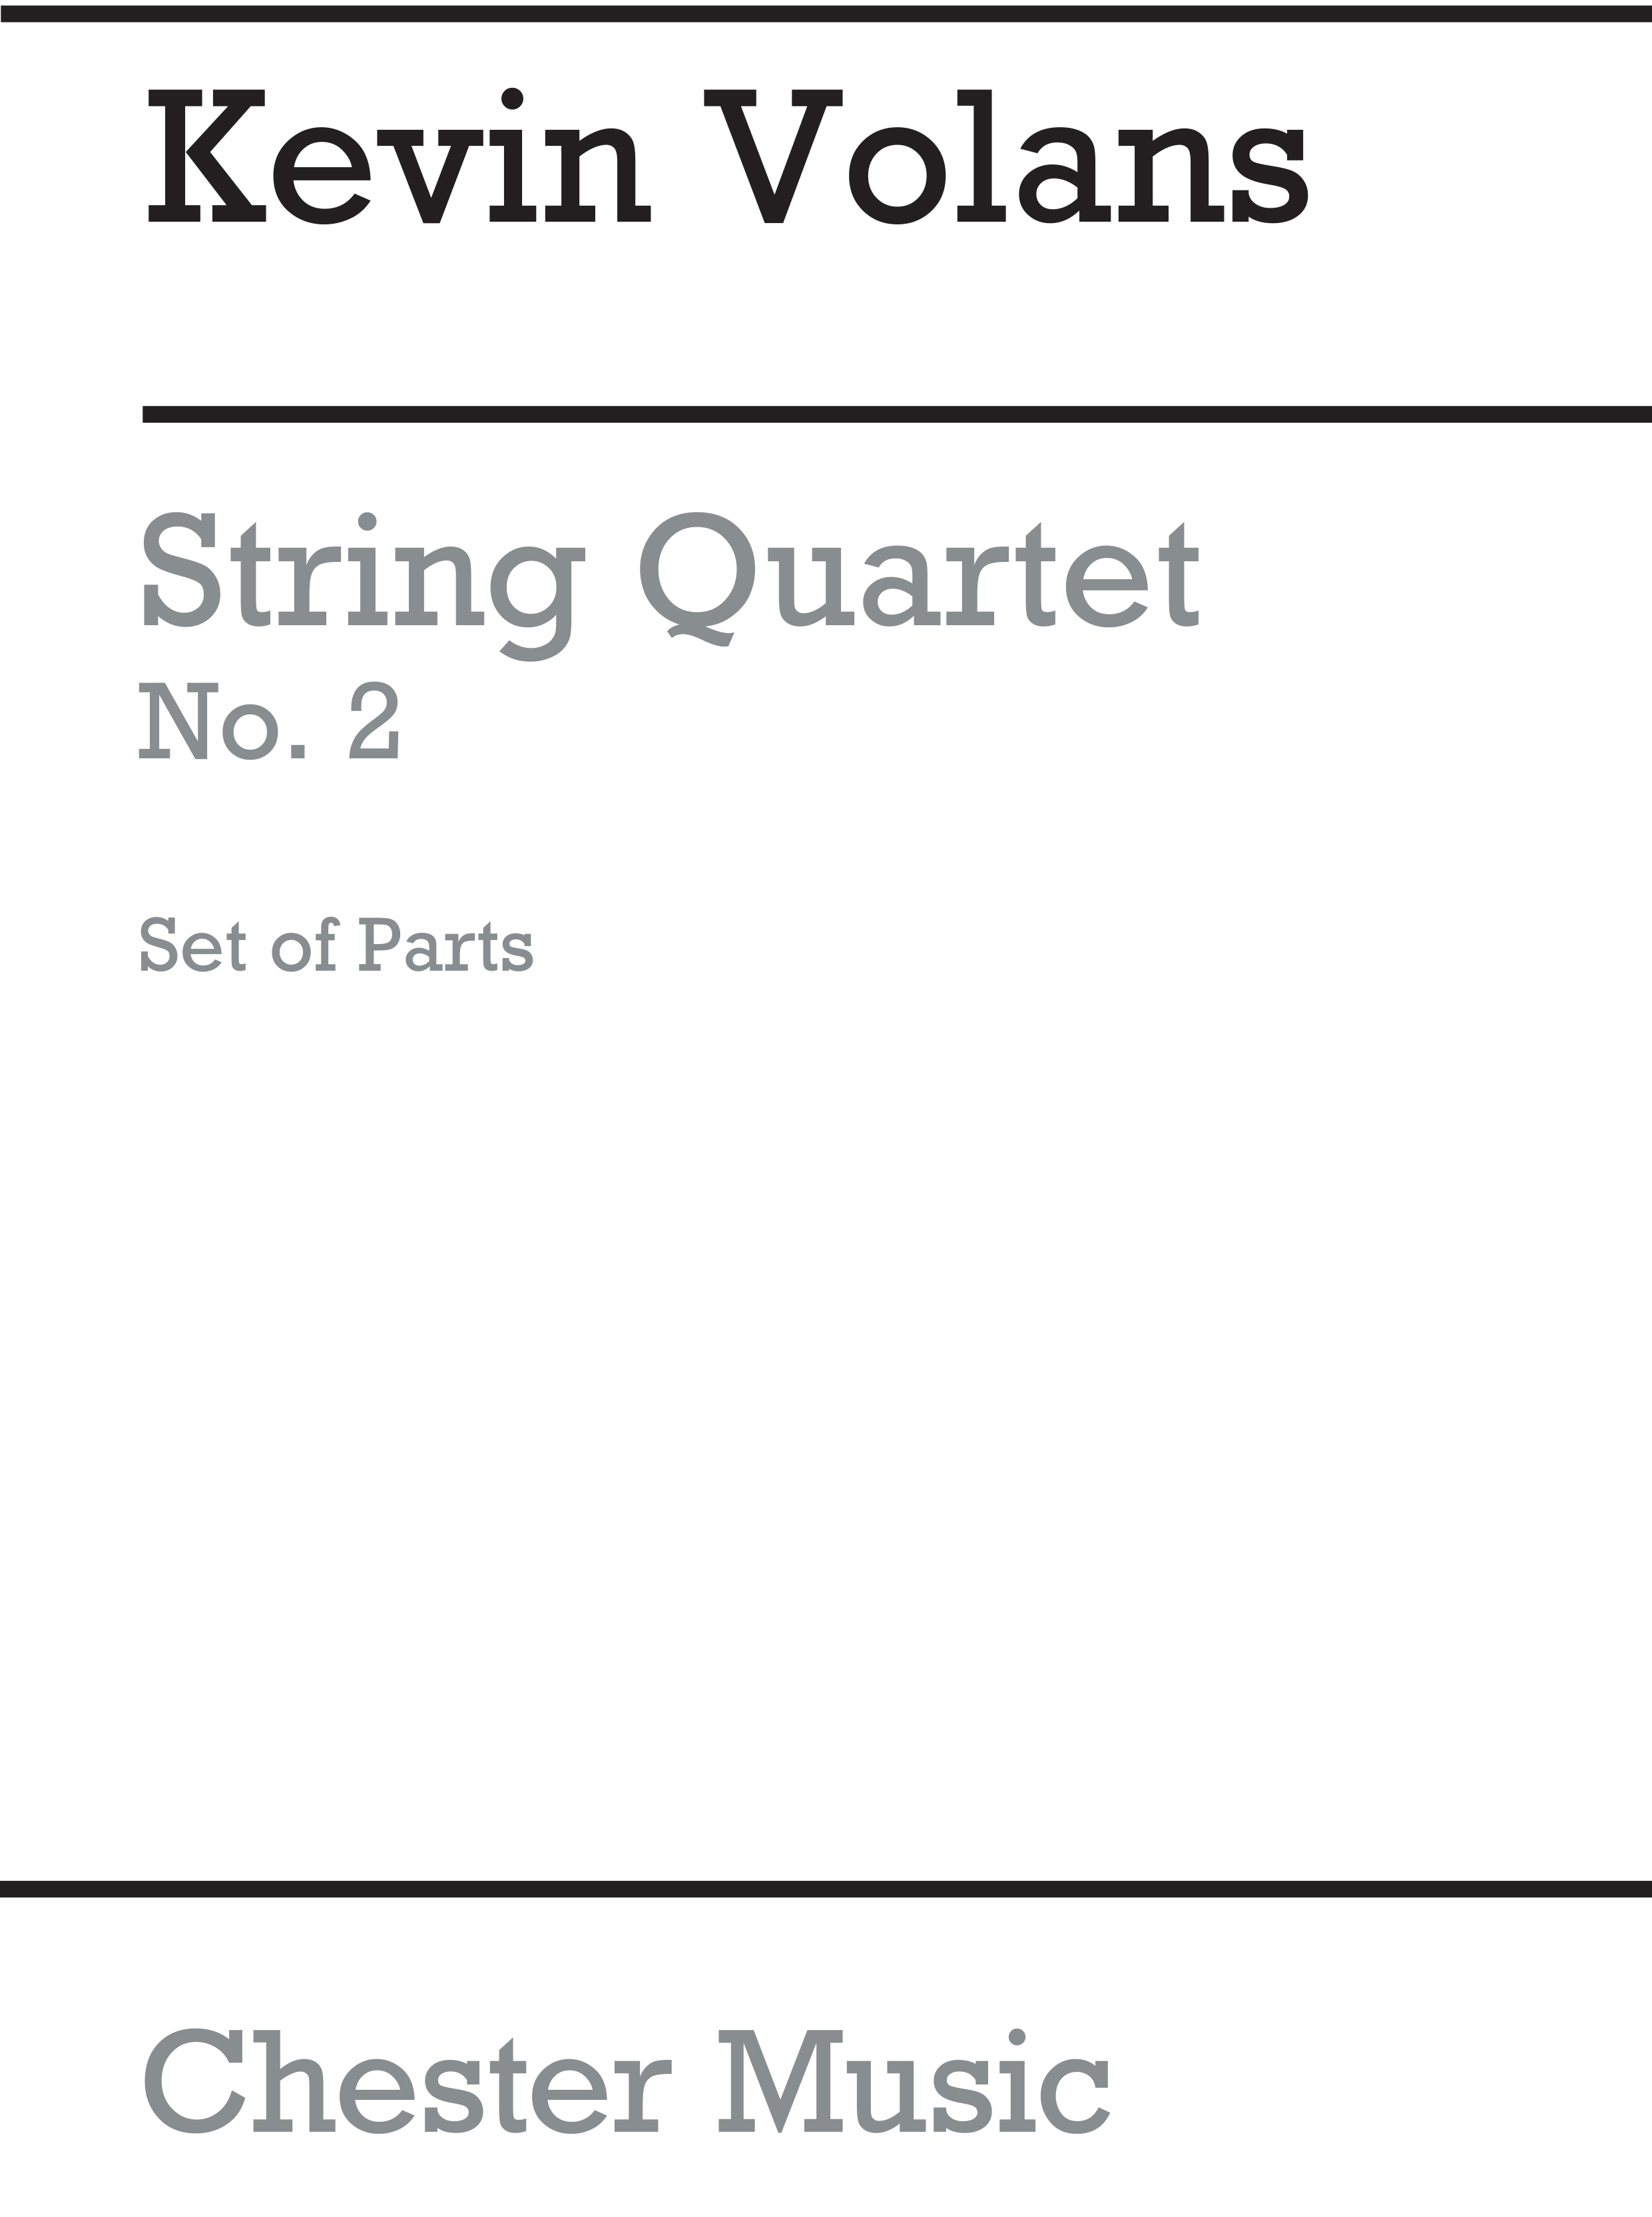 Kevin Volans: String Quartet No. 2 Hunting: String Quartet: Instrumental Work